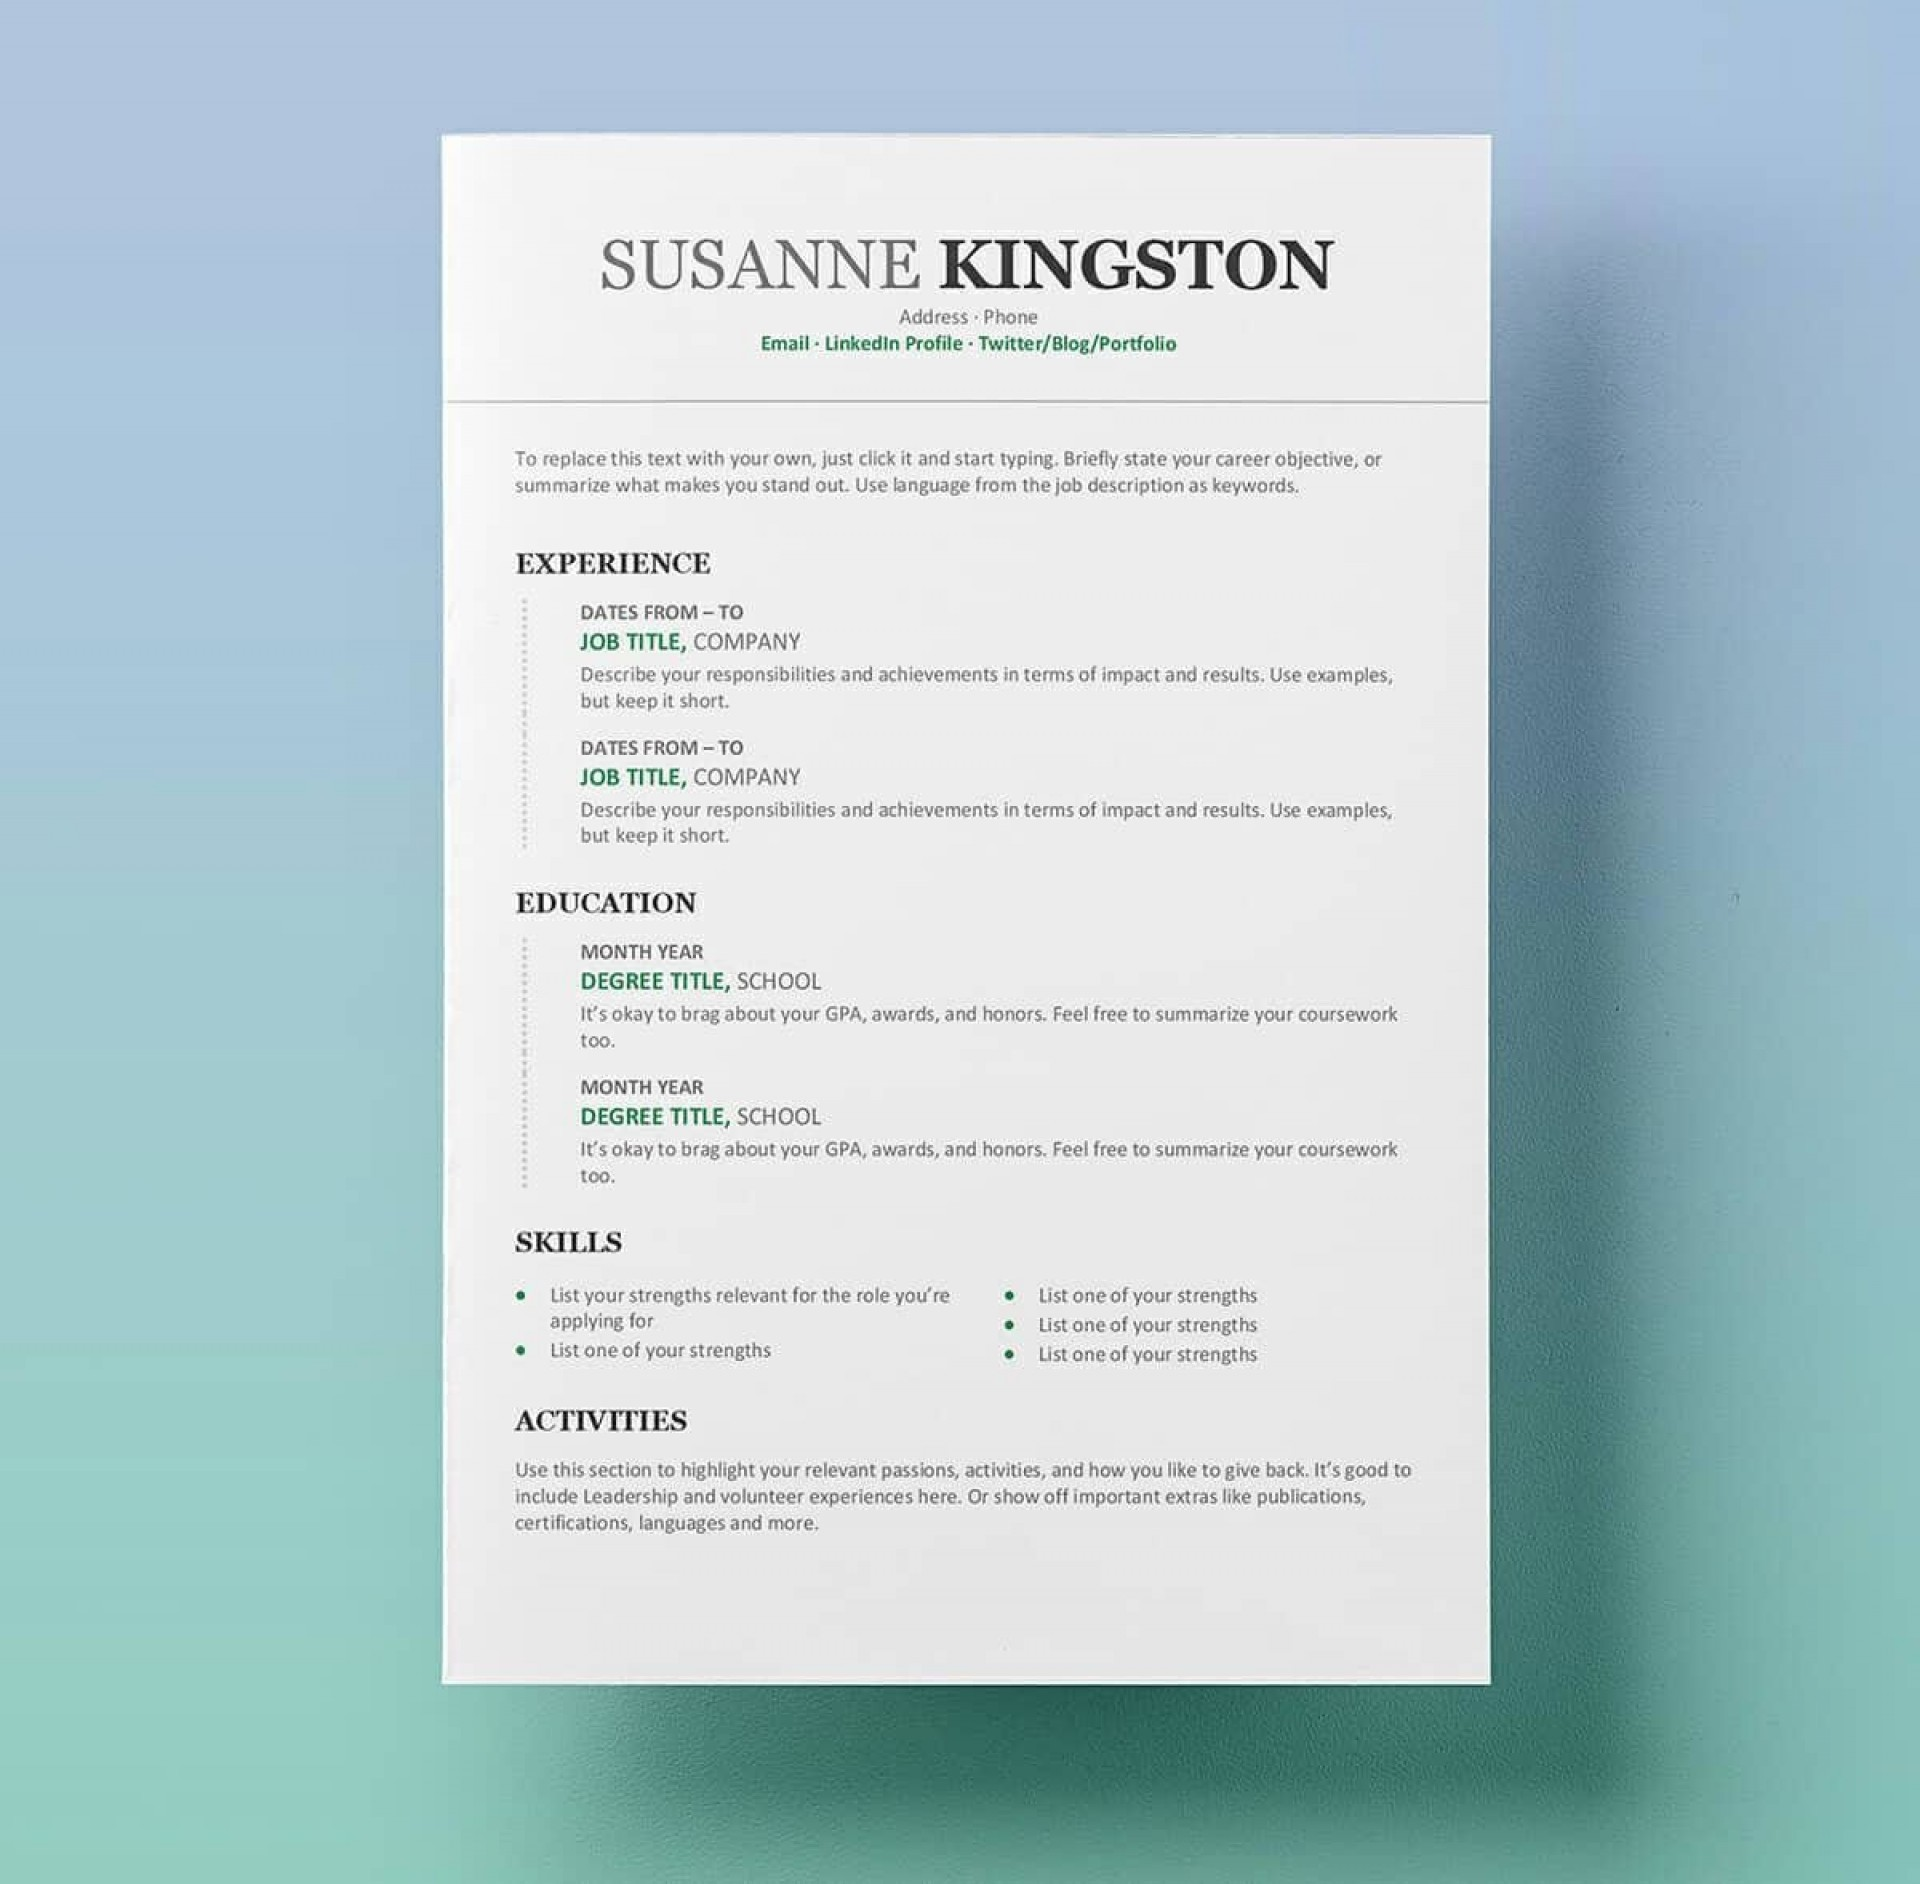 008 Marvelou Cool Resume Template For Word Free Image  Download Doc Best Format 20181920